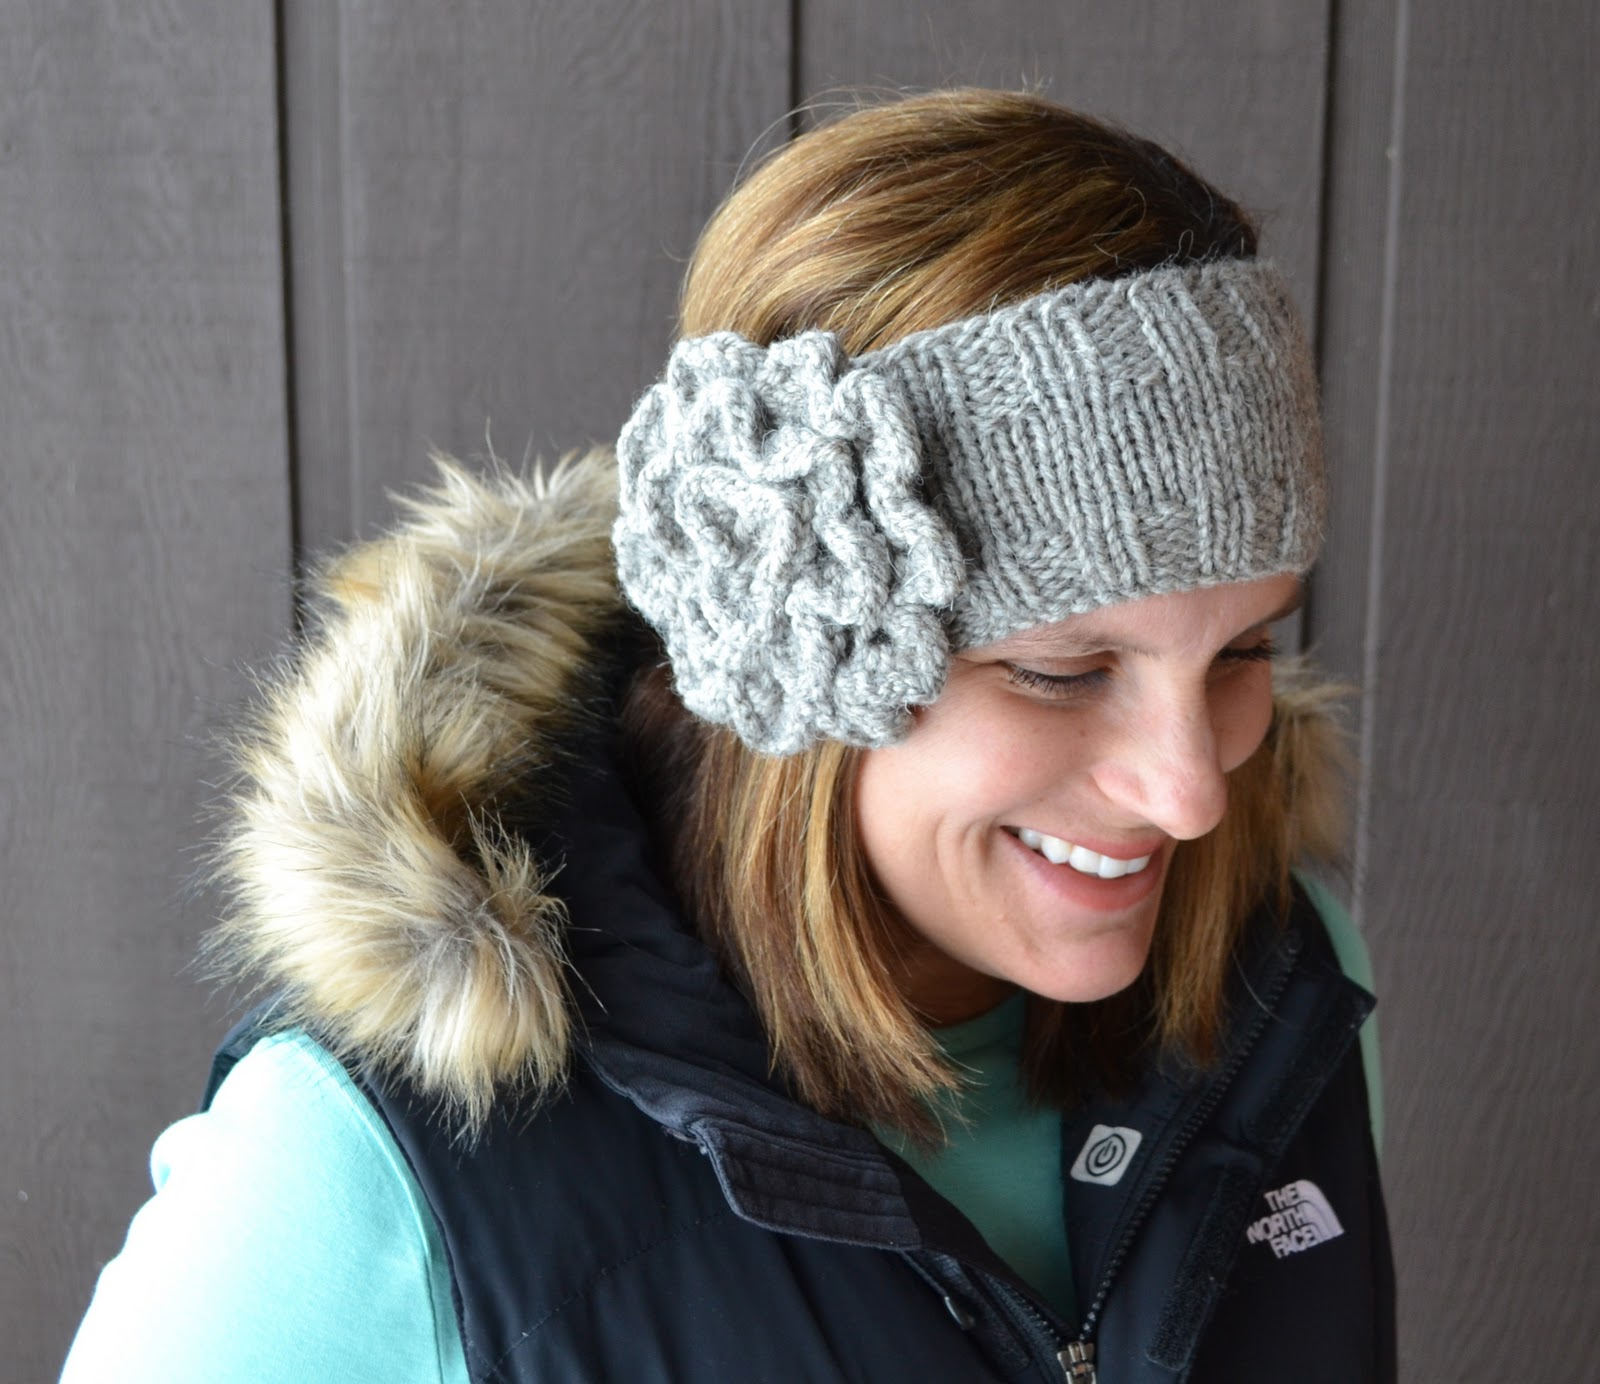 Old Fashioned Headband Knitting Pattern With Flower Crest - Blanket ...